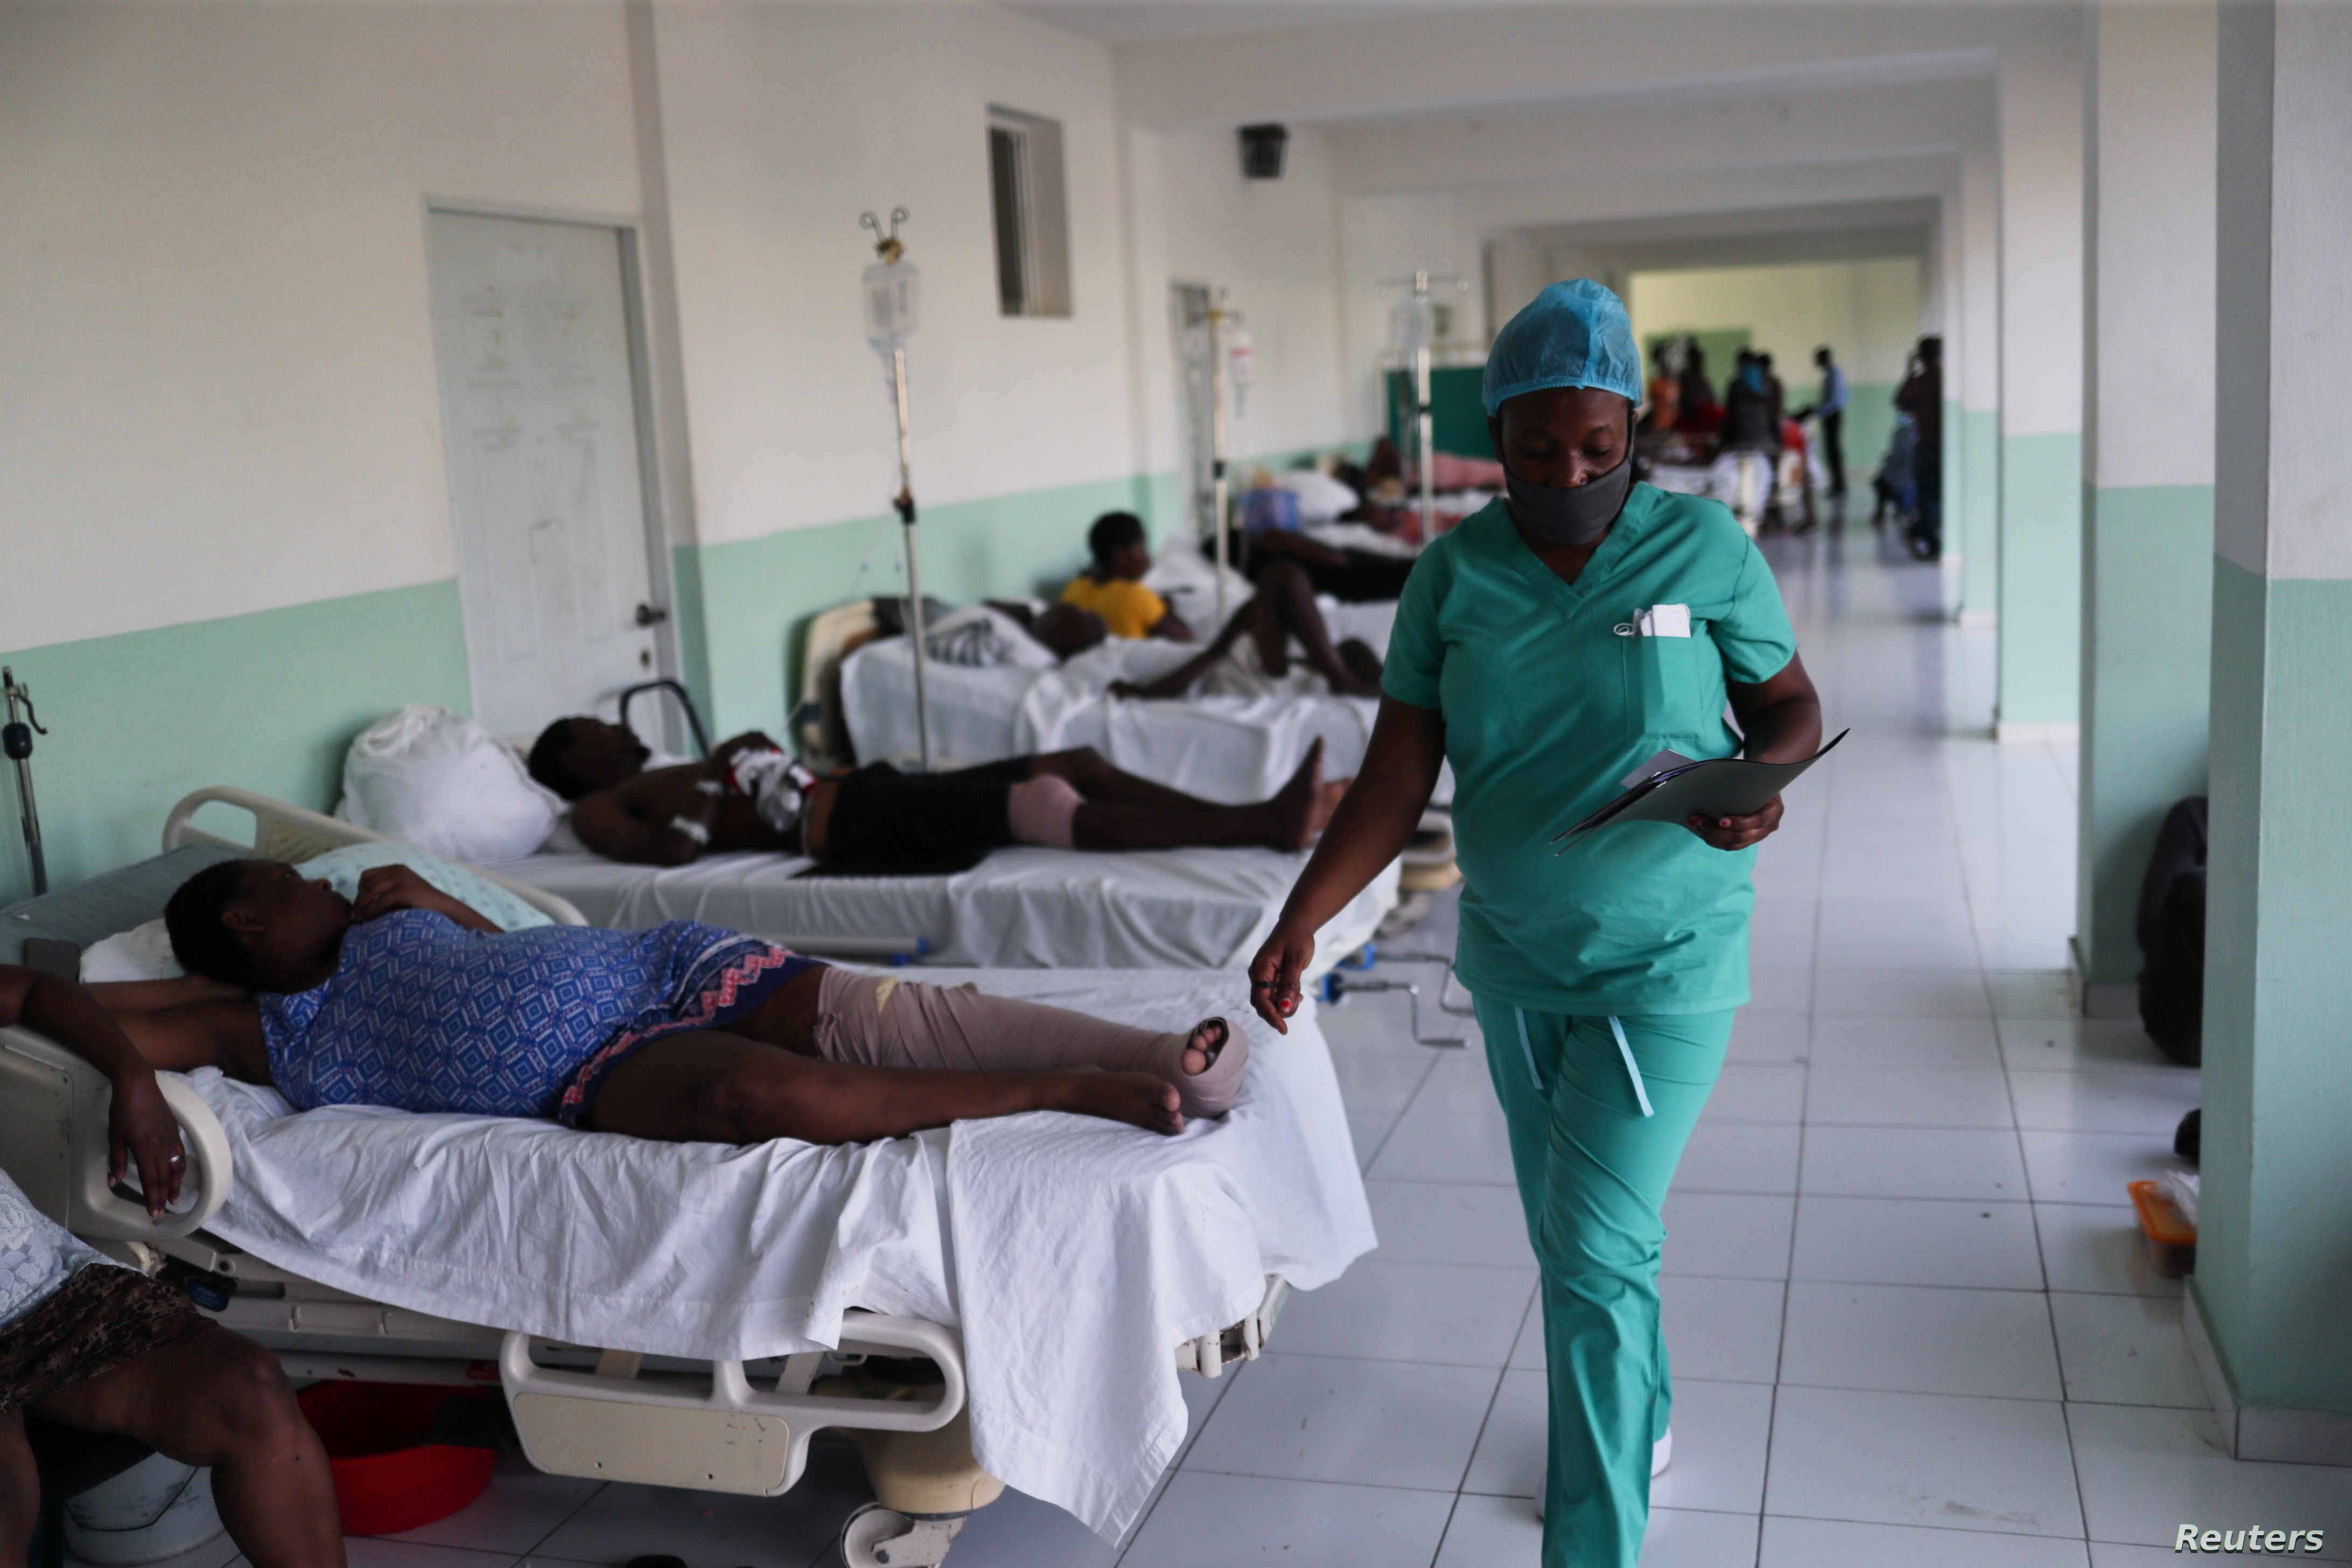 Frustration After Haiti Earthquake, Pressure For Aid Increased